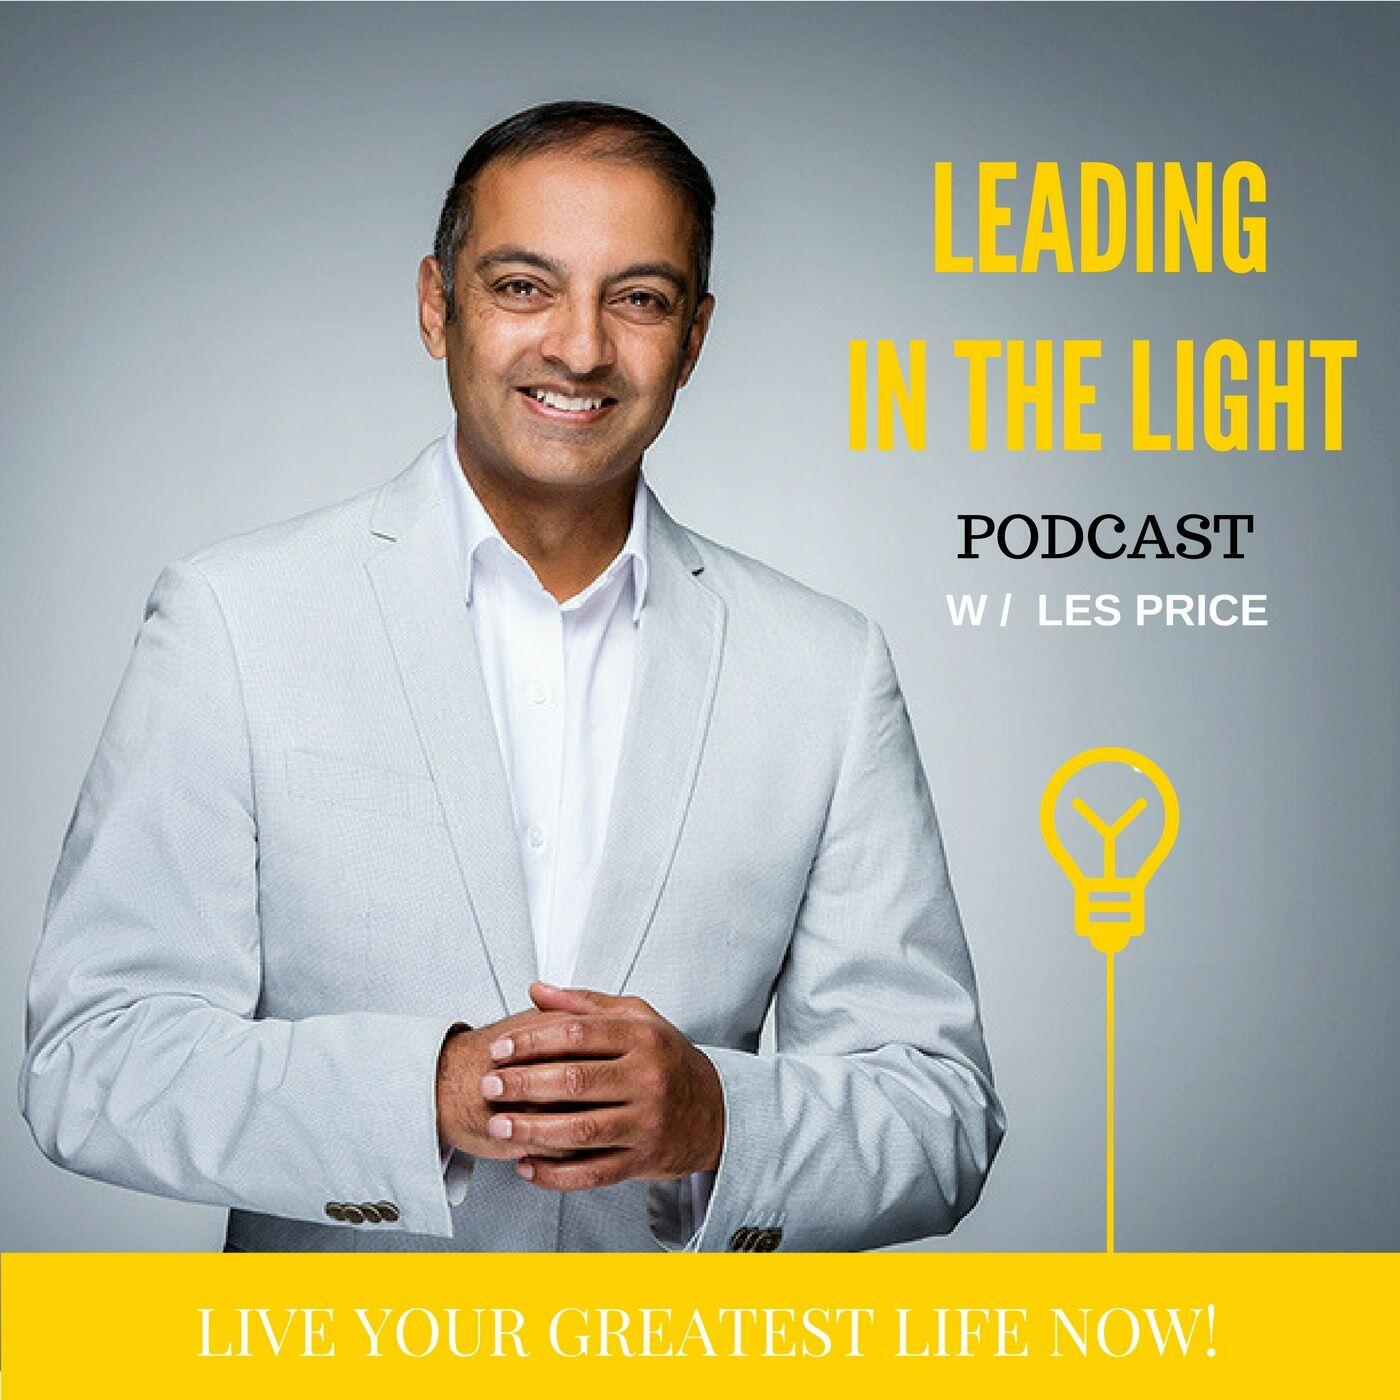 Leading in the Light Podcast